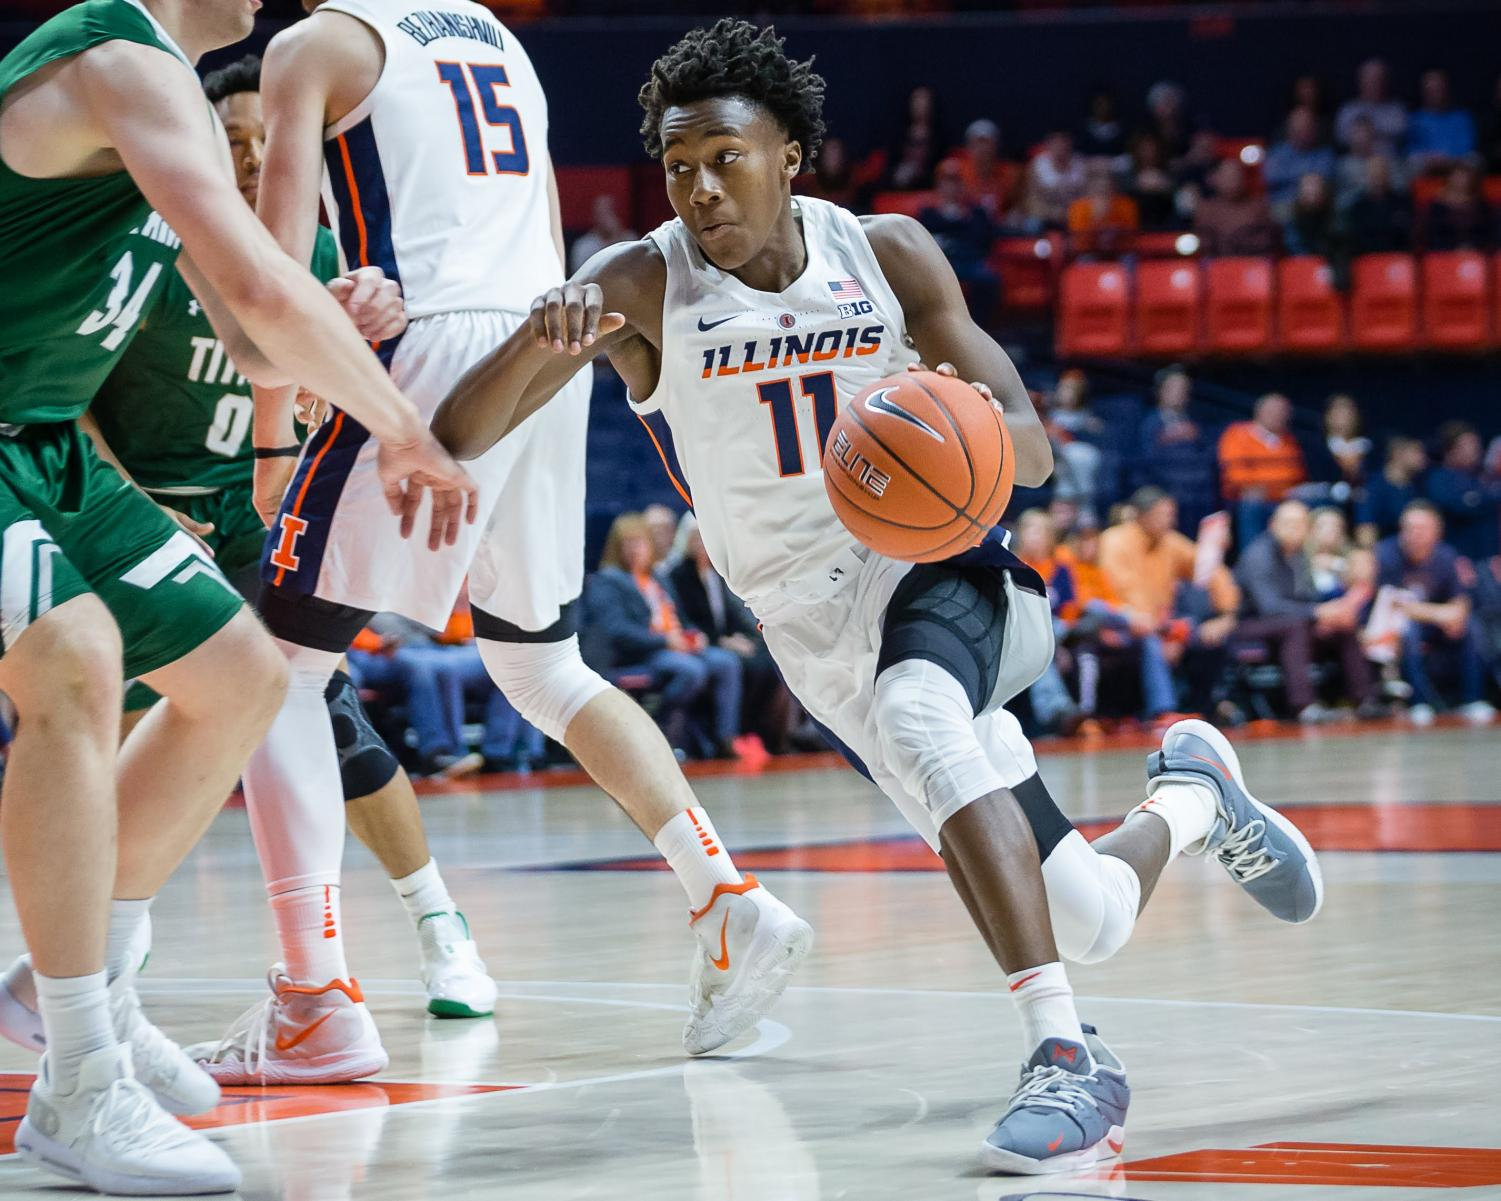 Illinois guard Ayo Dosunmu drives to the basket during the exhibition game against Illinois Wesleyan at the State Farm Center on Friday, Nov. 2, 2018. The Illini won 83-67.